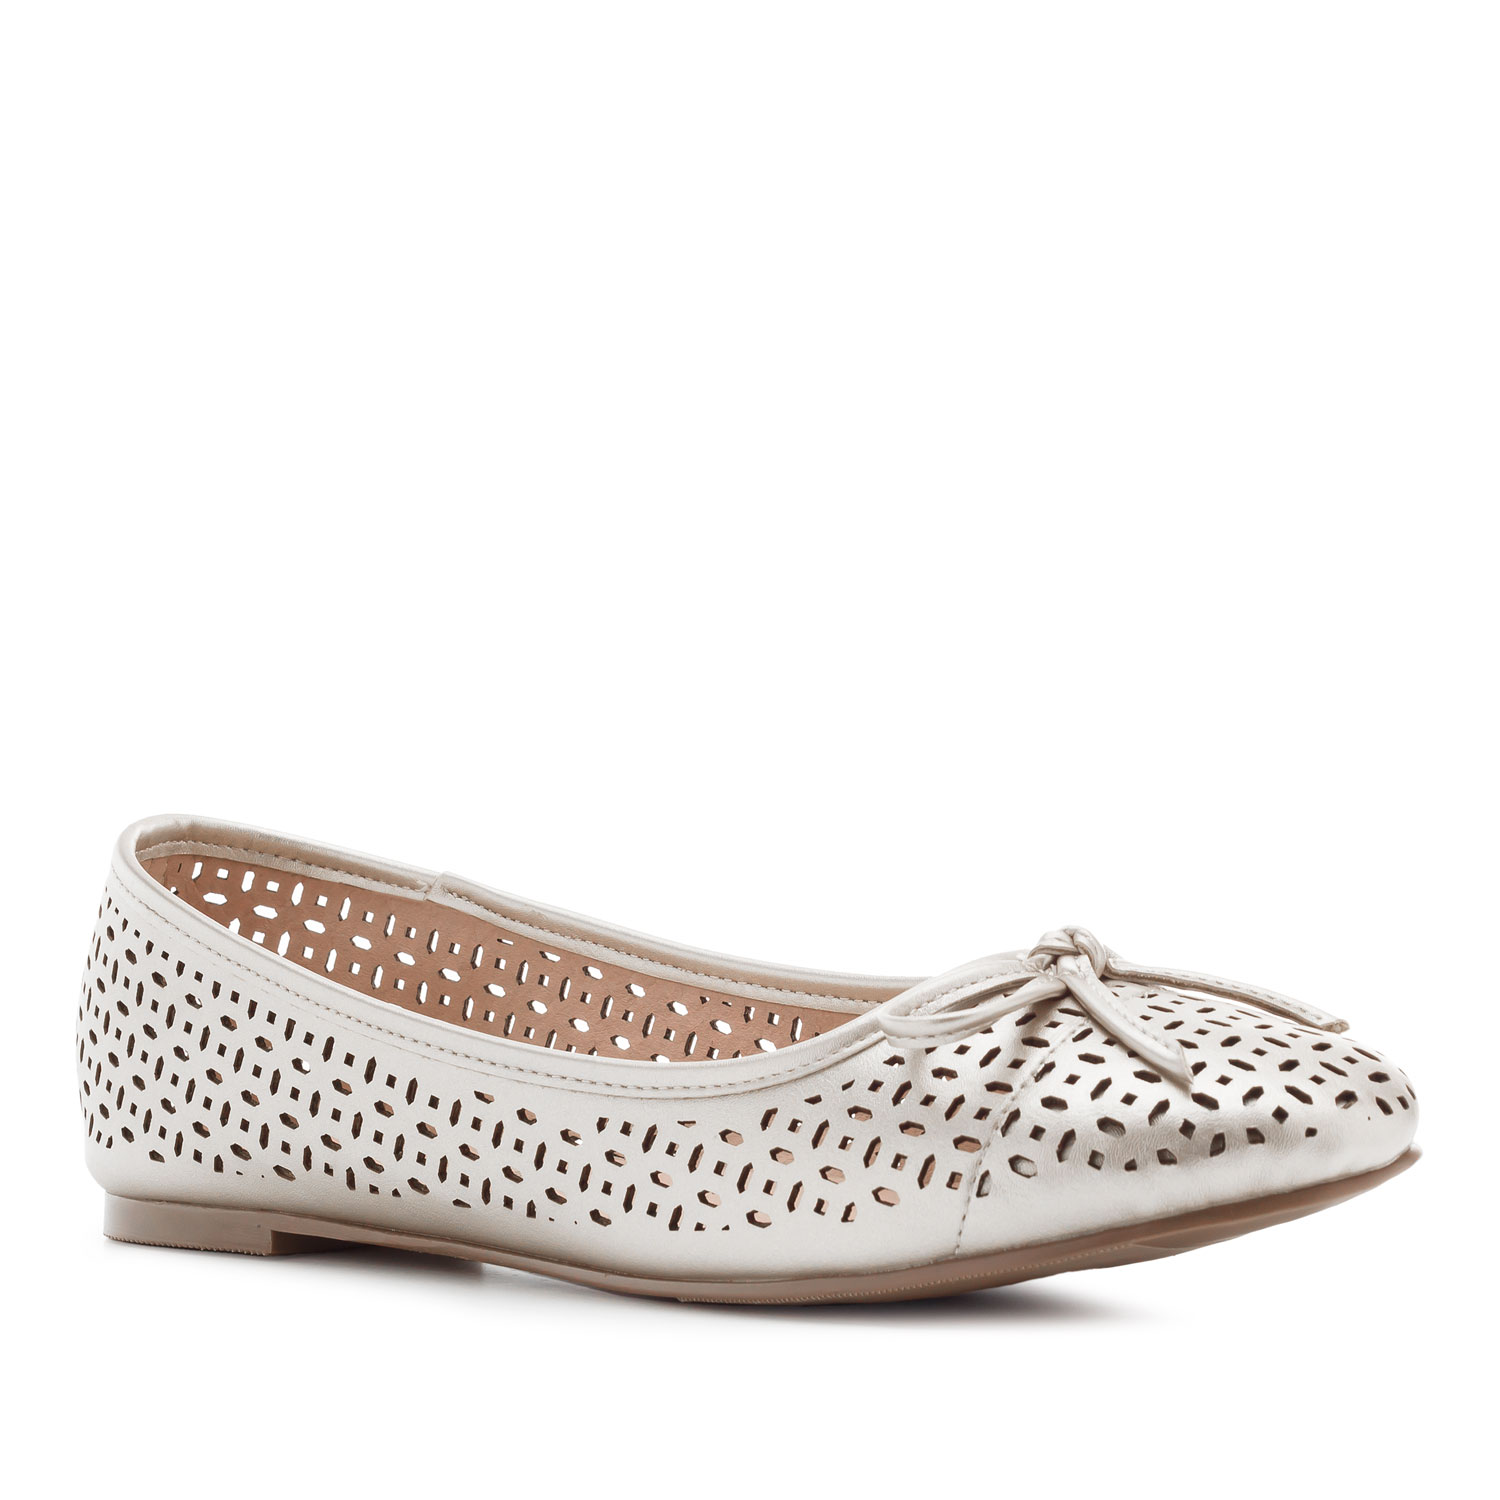 Die-cut Ballet Flats in Silver faux Leather